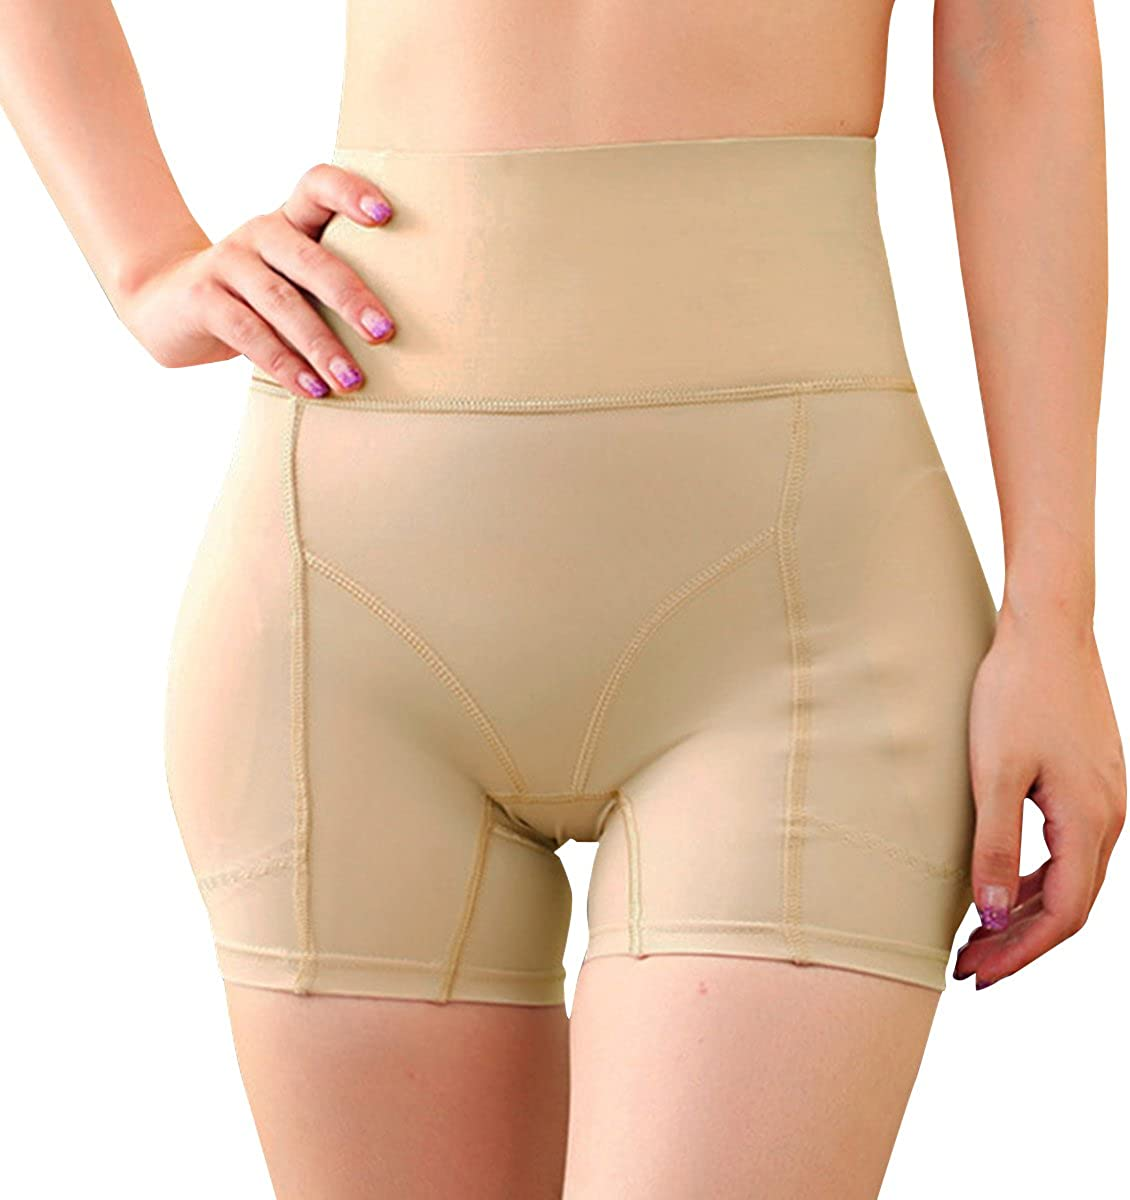 Miureal Women's Hip Enhancer Firm Control Seamless Padded Thigh Slimmer Panties